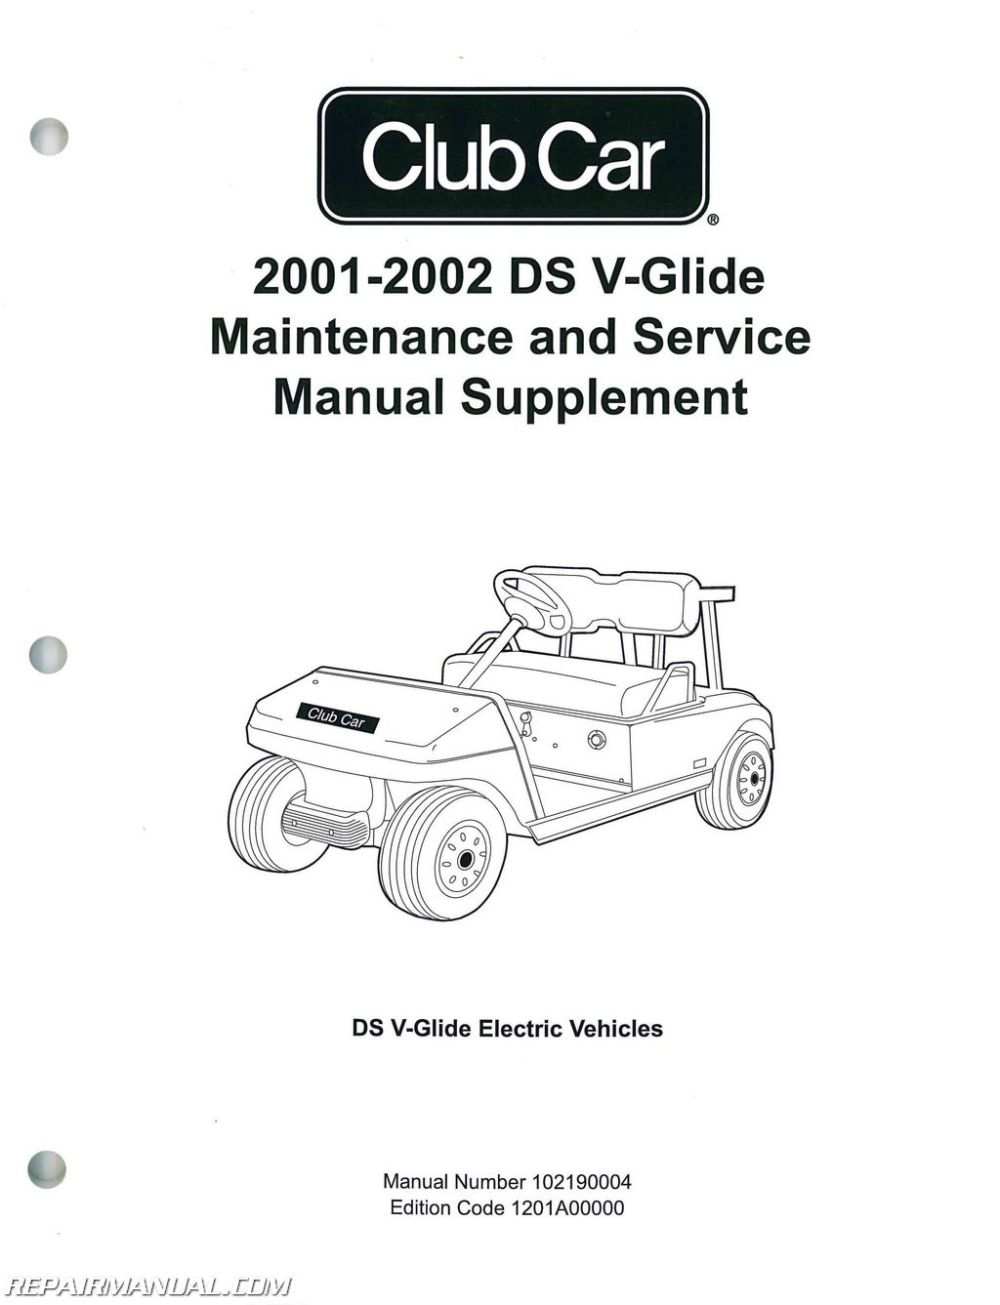 medium resolution of 2001 2002 club car ds v glide golf car maintenance and service club car battery diagram club car v glide diagram